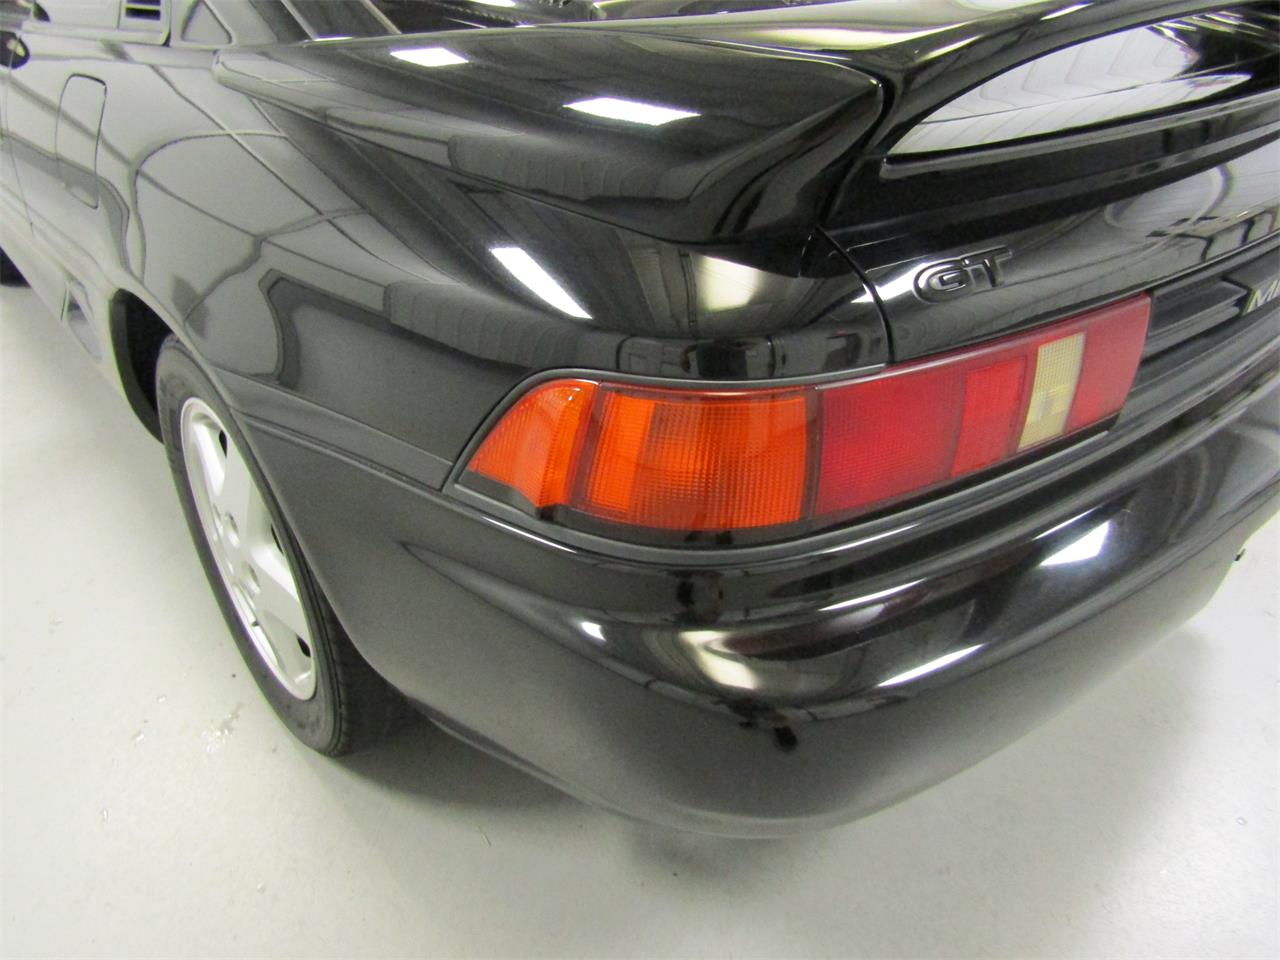 Large Picture of '92 MR2 located in Virginia - $16,991.00 Offered by Duncan Imports & Classic Cars - OLED